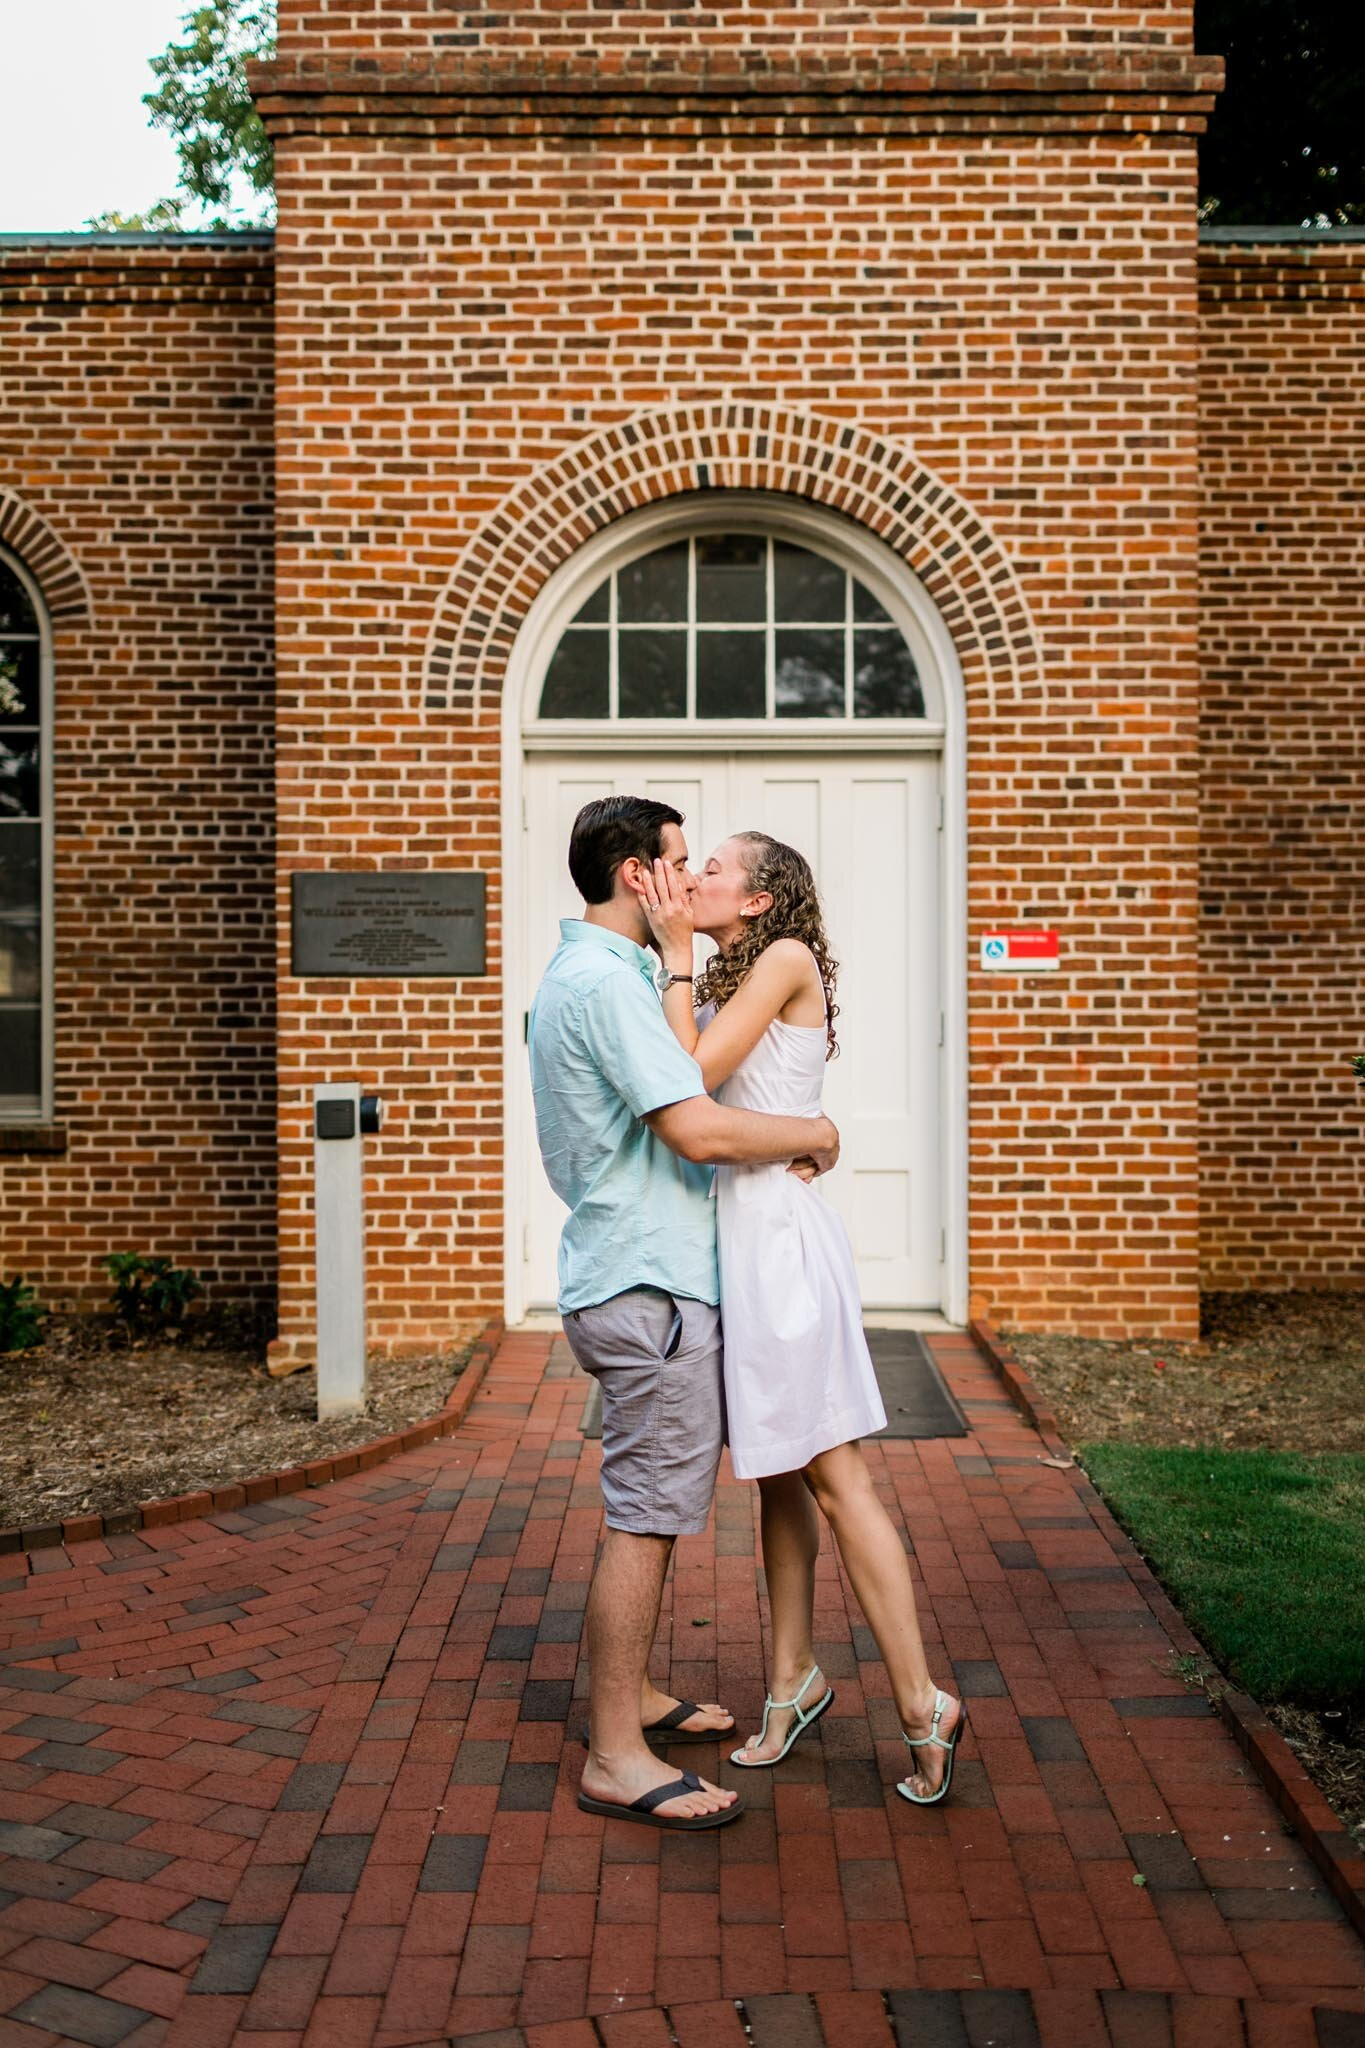 Raleigh Engagement Photographer | NC State University | By G. Lin Photography | Couple kissing after proposal